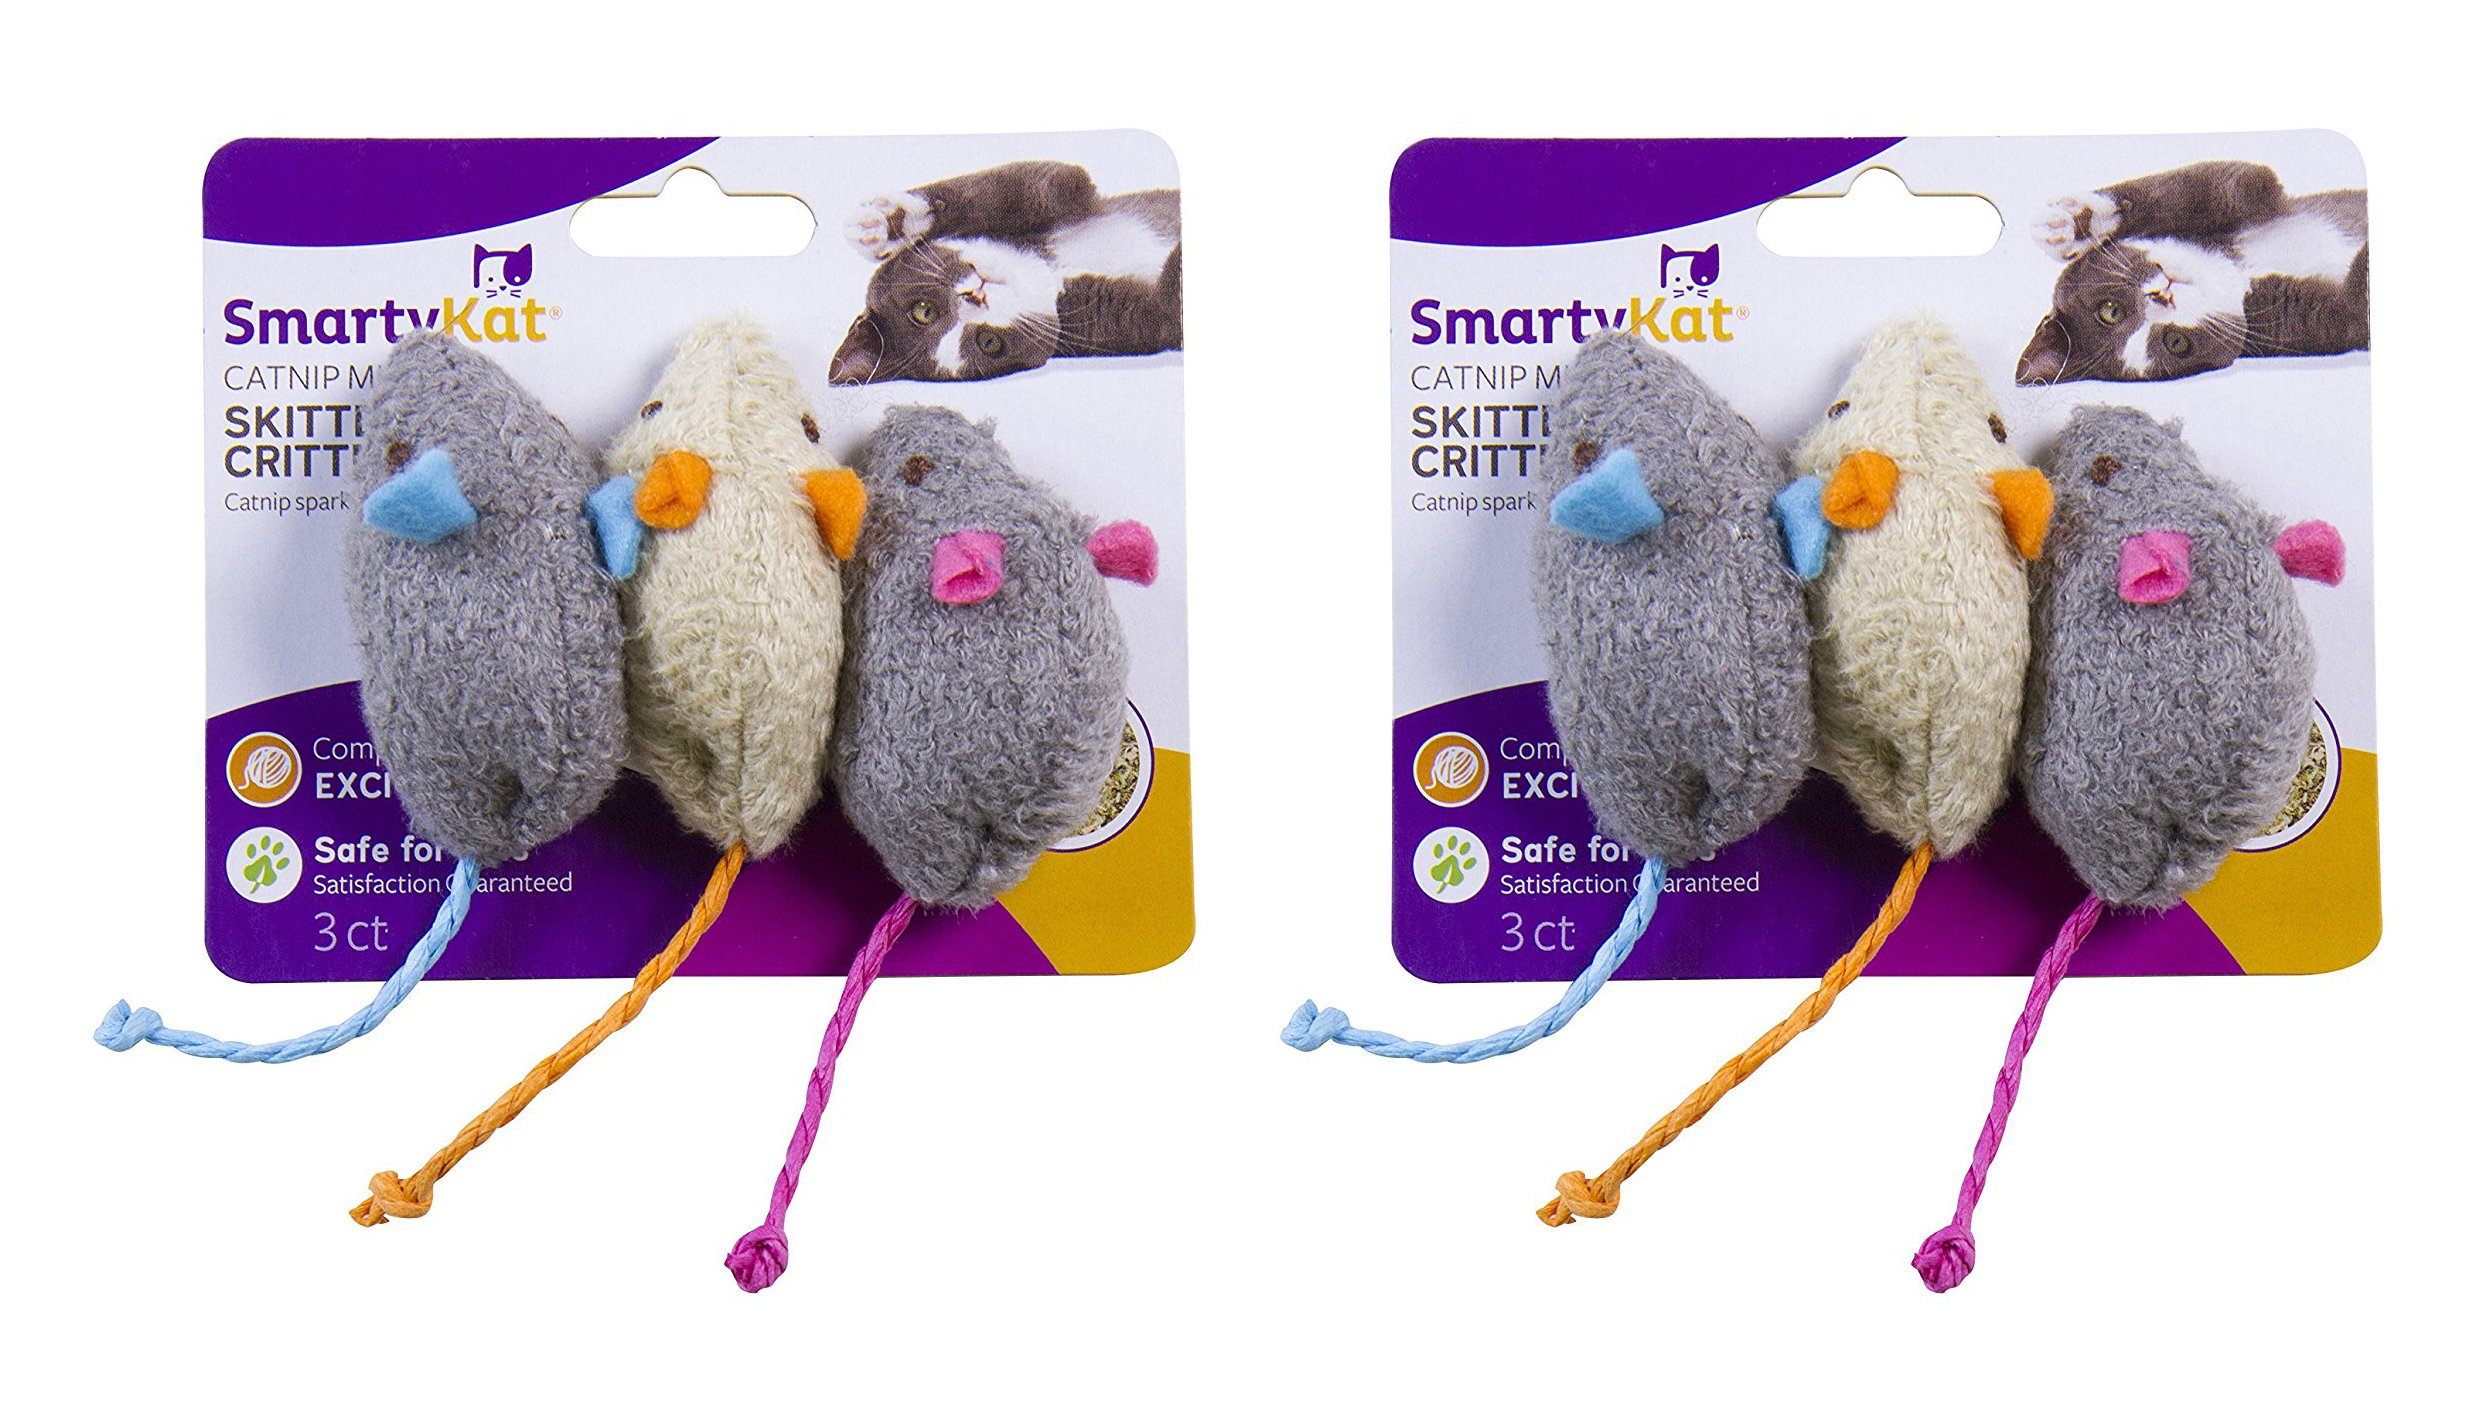 SmartyKat Skitter Critters Cat Toy Catnip Mice, 6-Pack